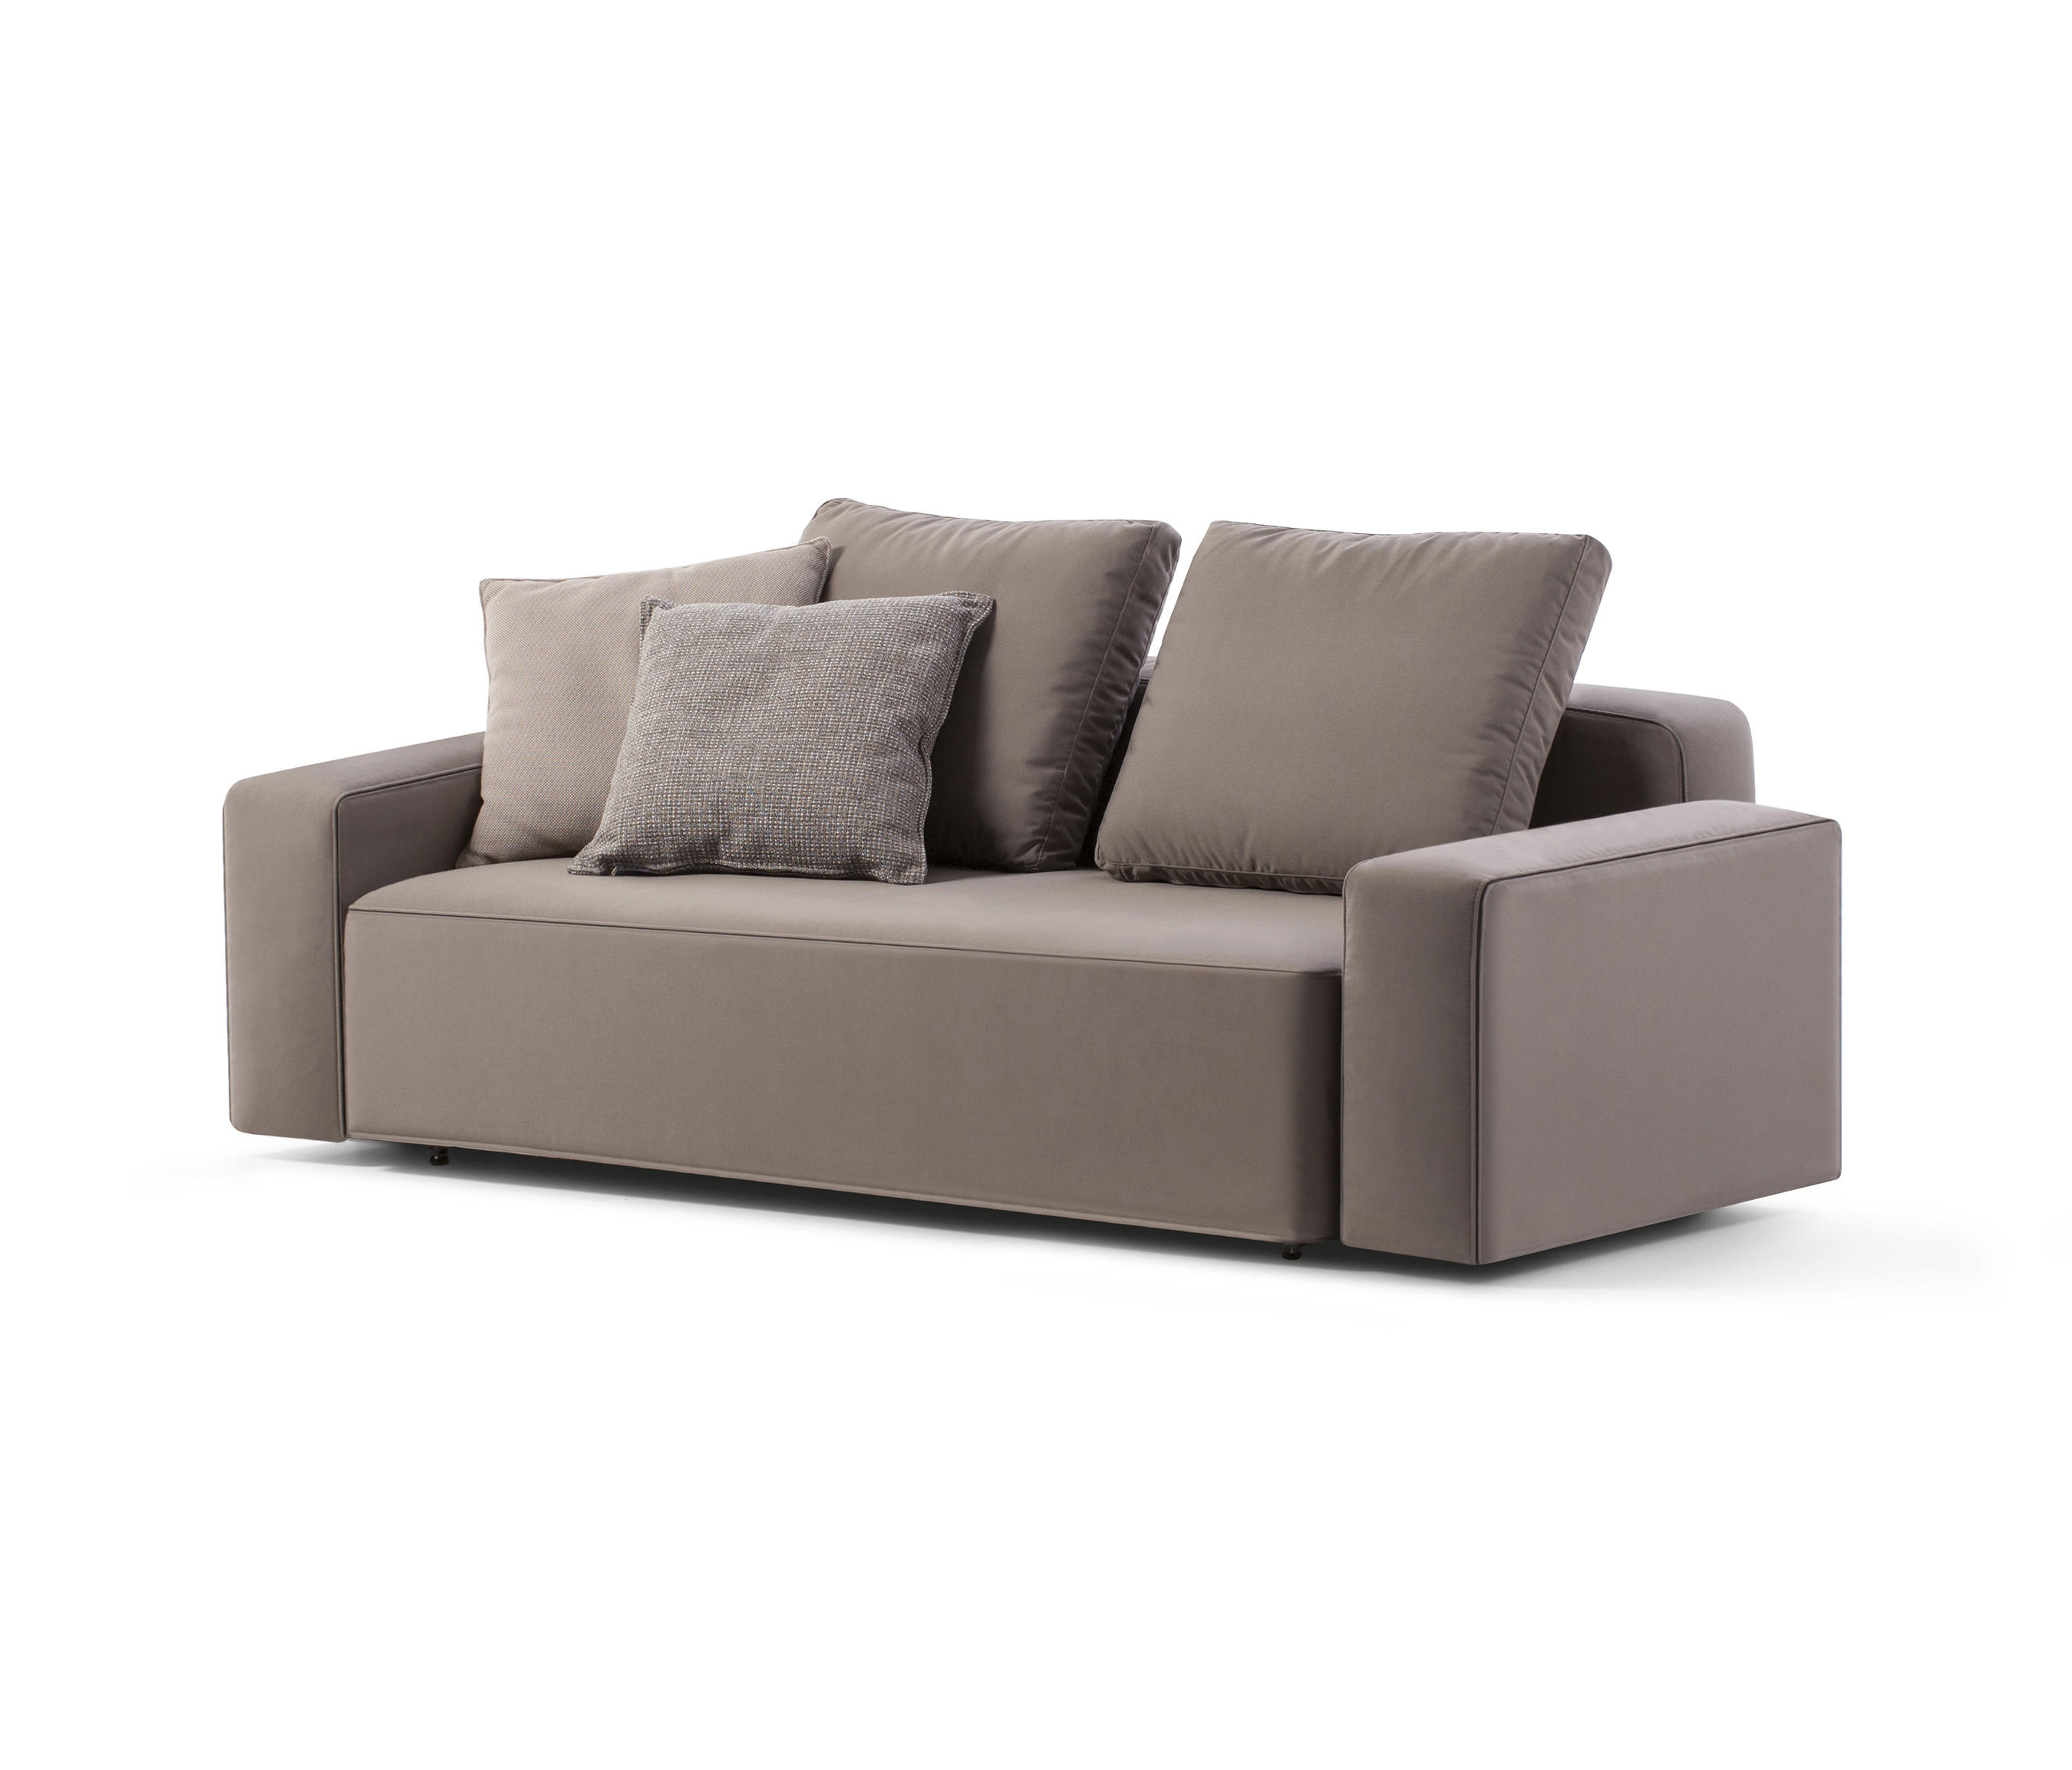 DANDY 2 SEATER SOFA - Sofas from Roda | Architonic